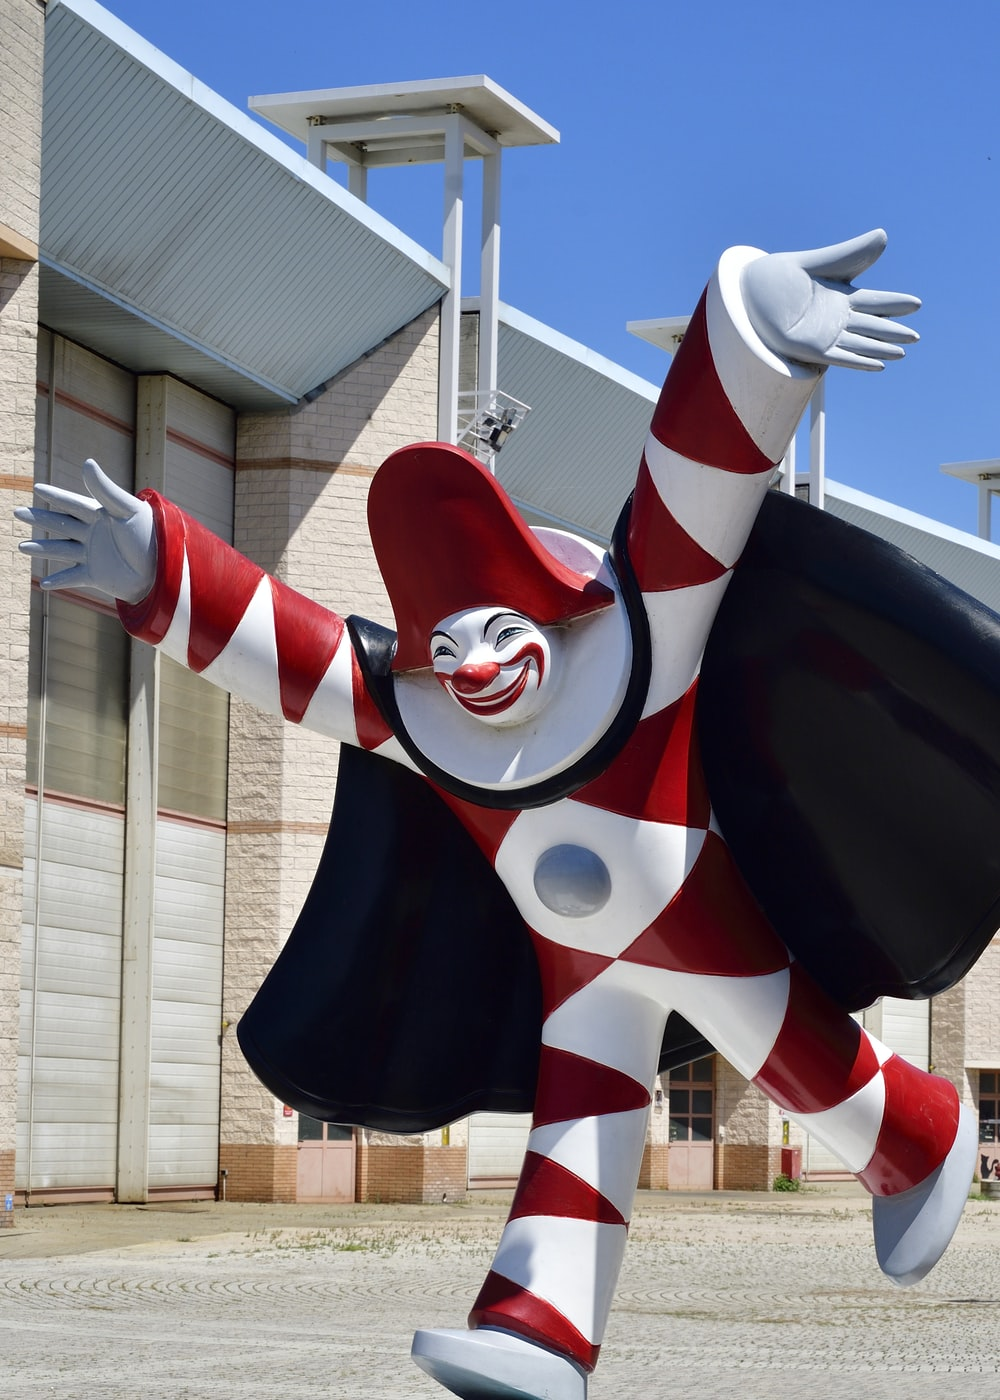 white, red, and black clown statue